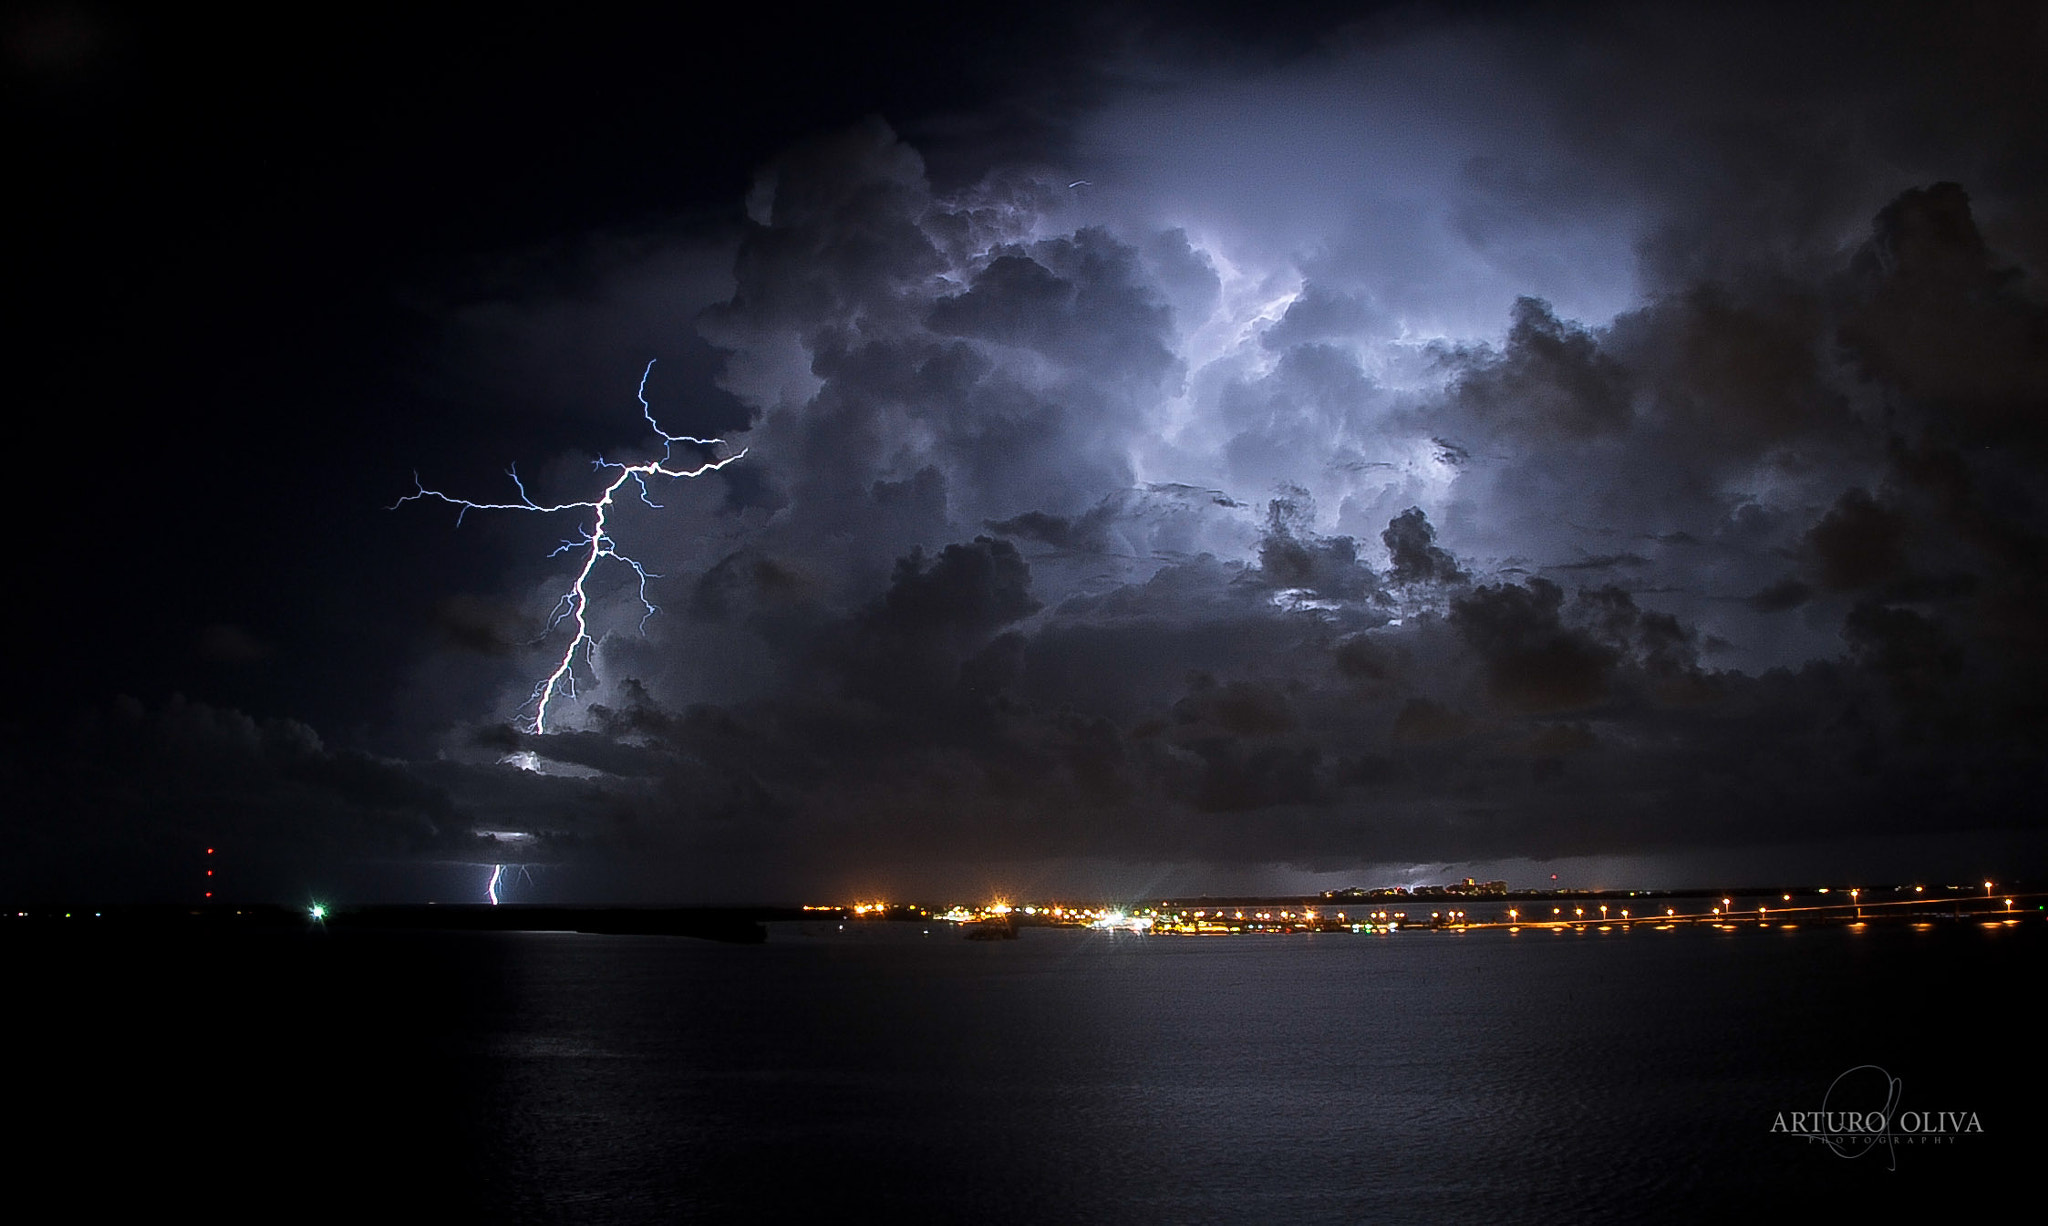 Photograph Miami storm by Arturo Oliva on 500px